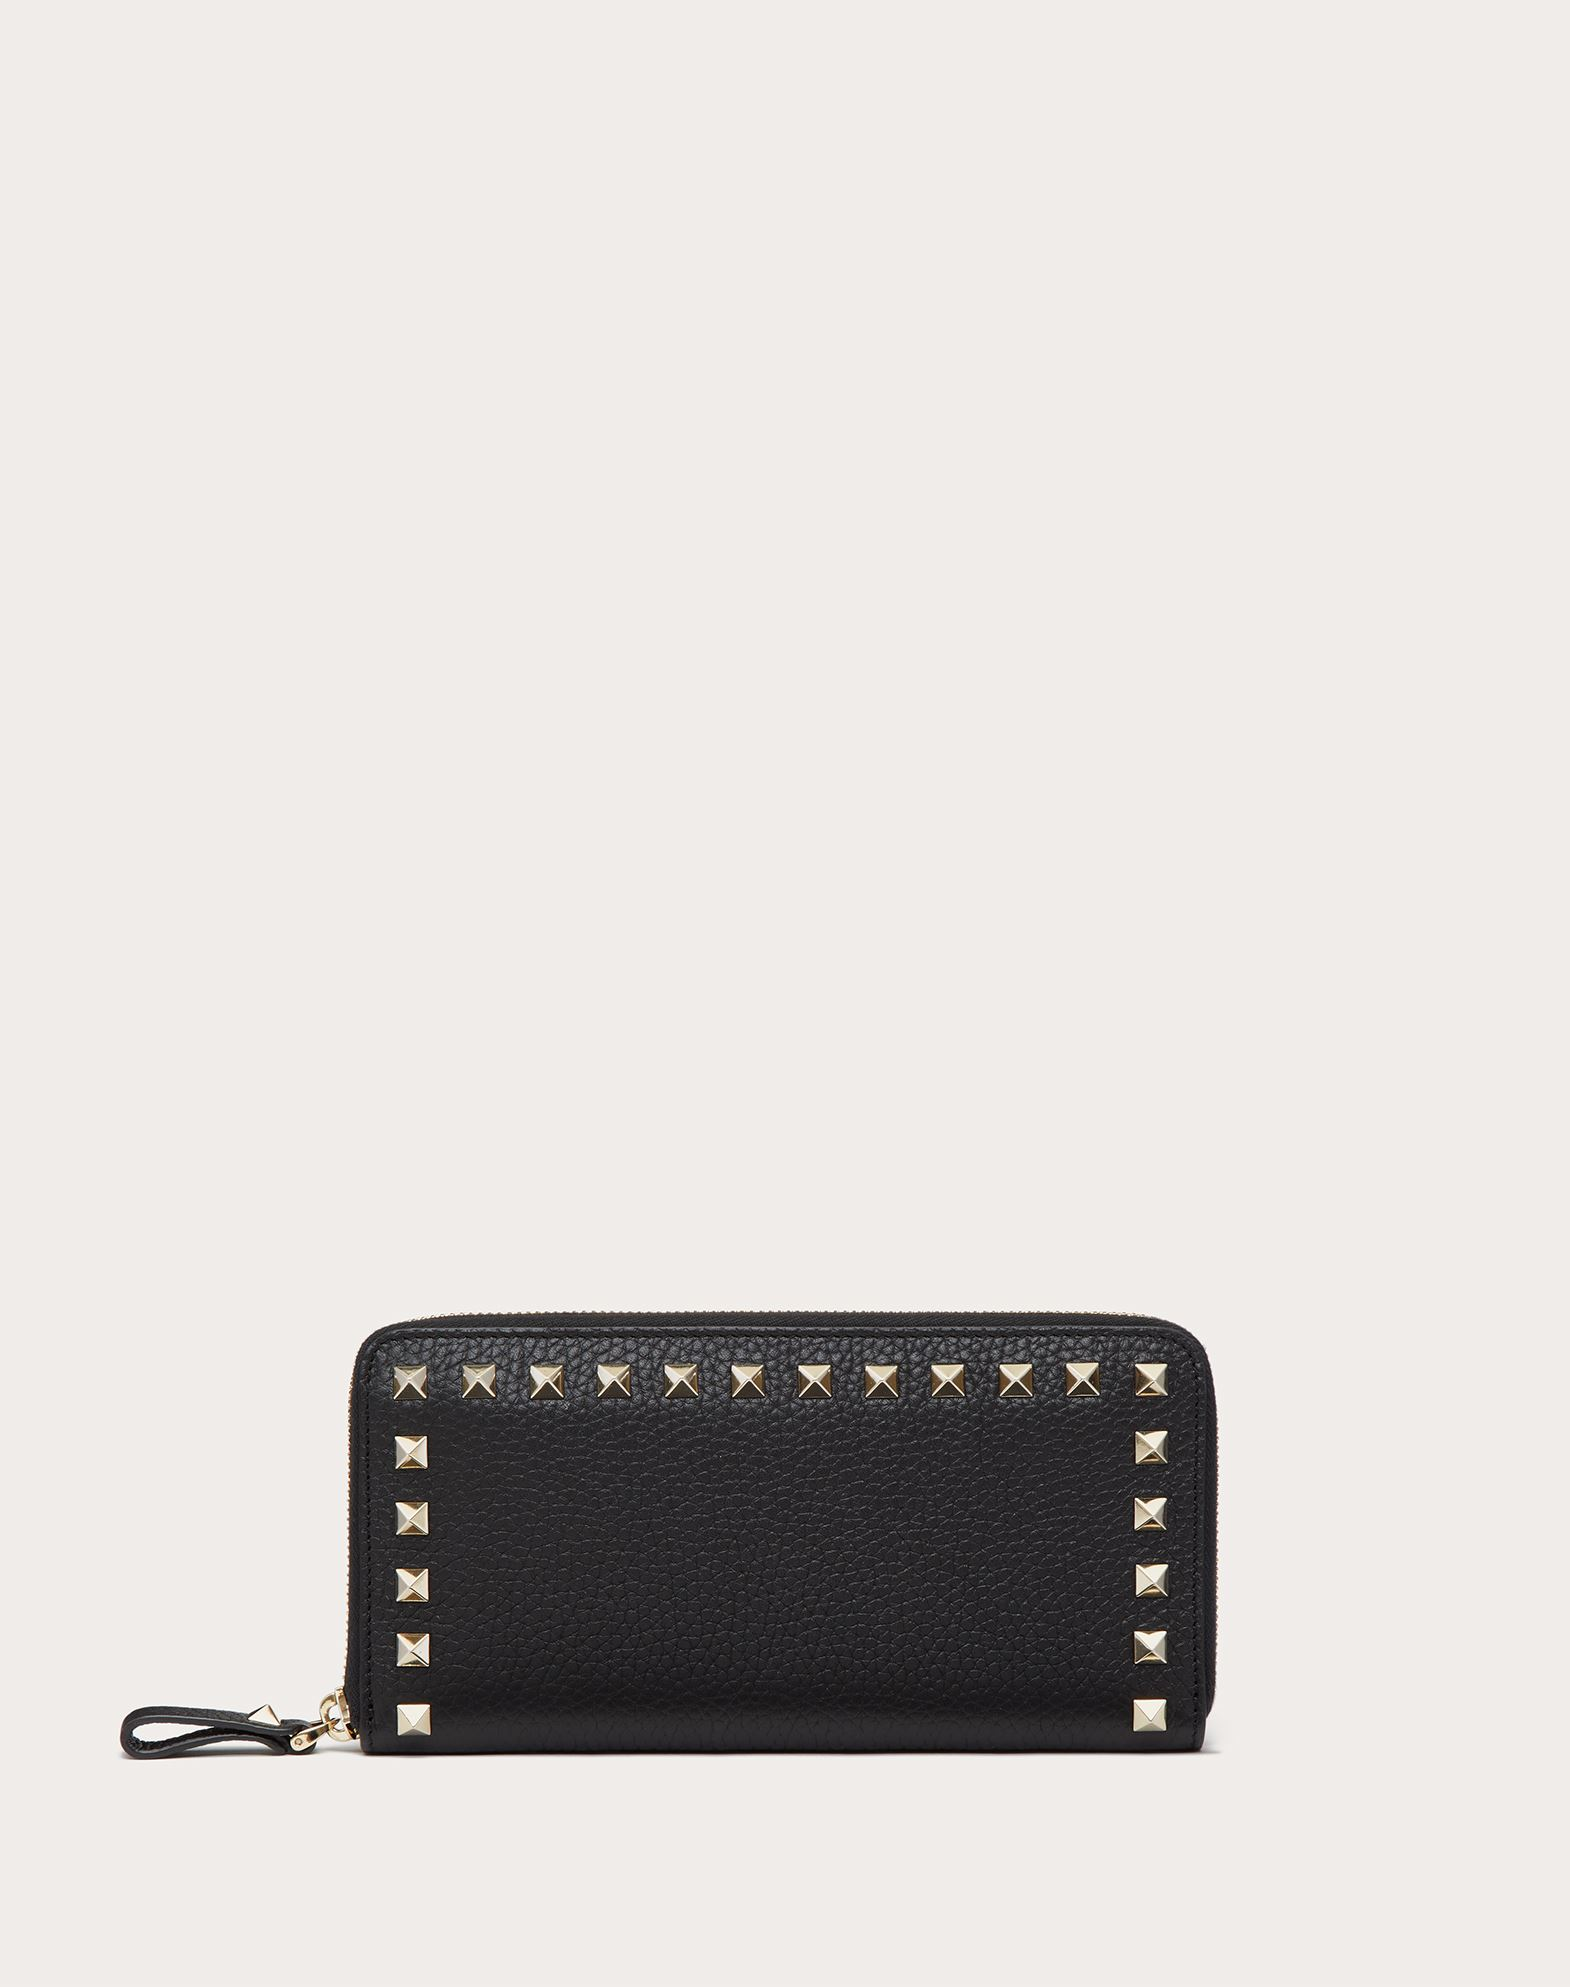 VALENTINO GARAVANI Rockstud Wallet ZIP AROUND WALLETS D f